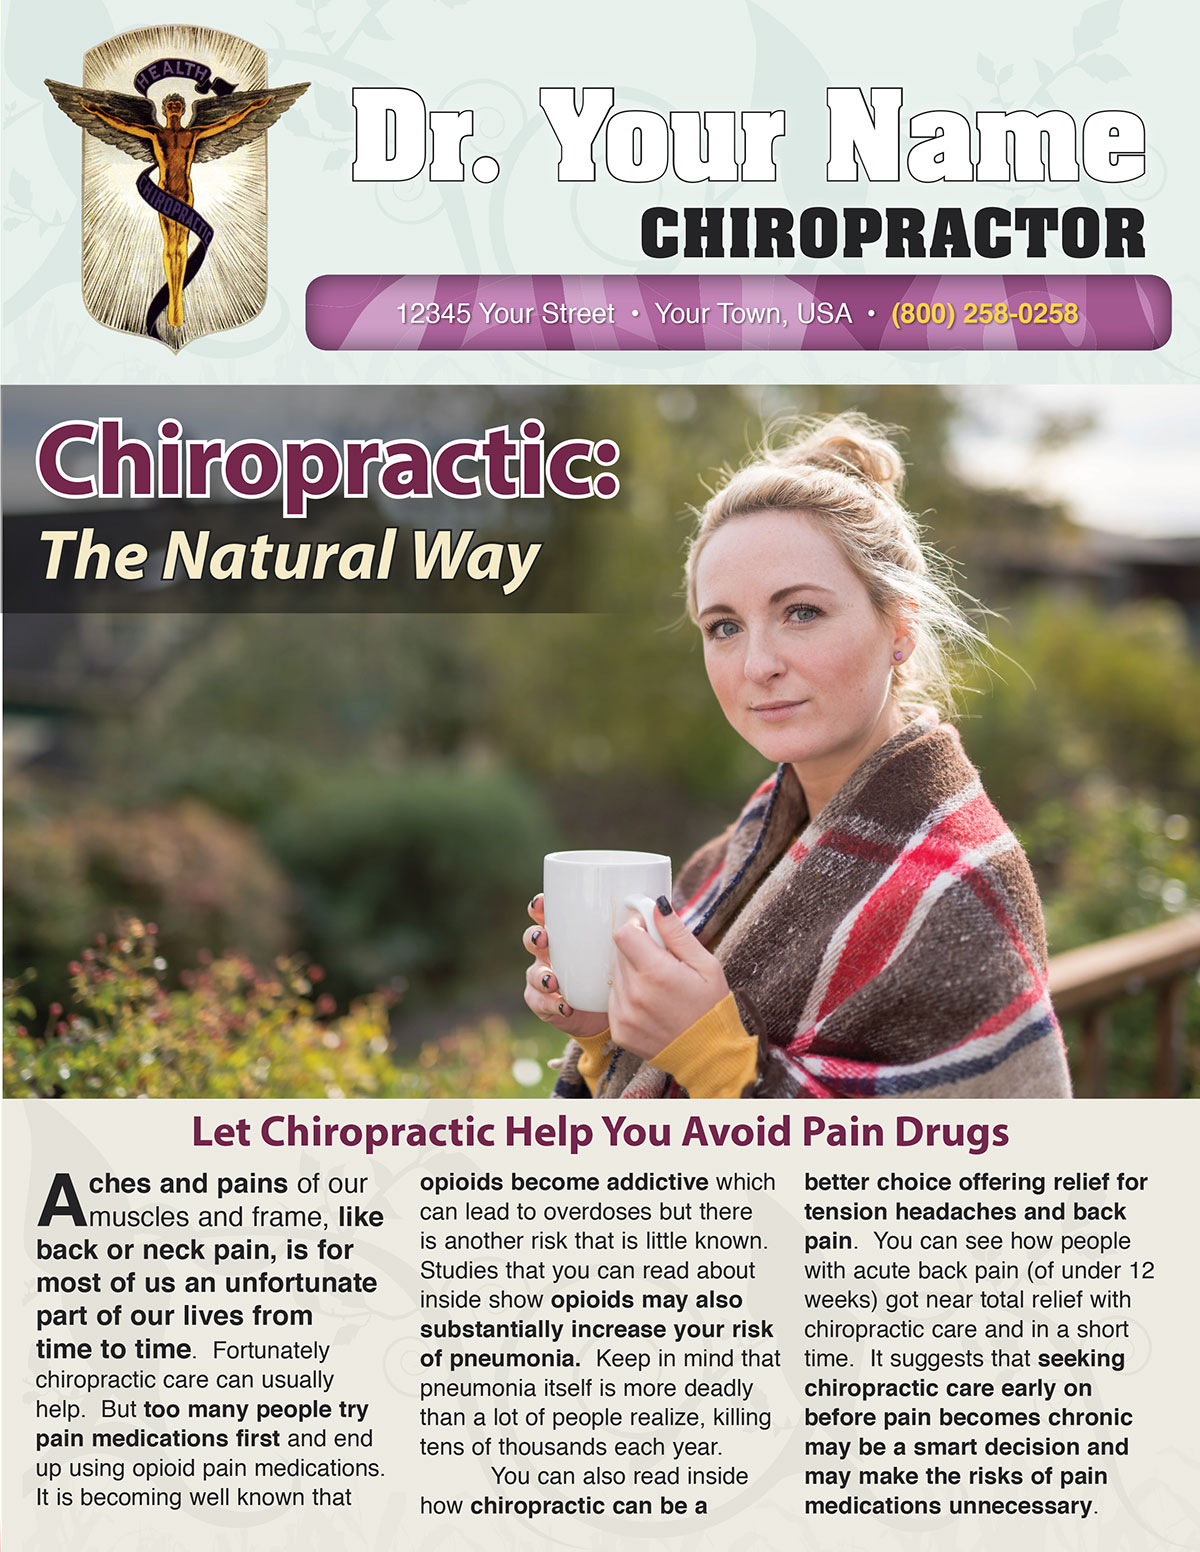 Chiropractic: The Natural Way